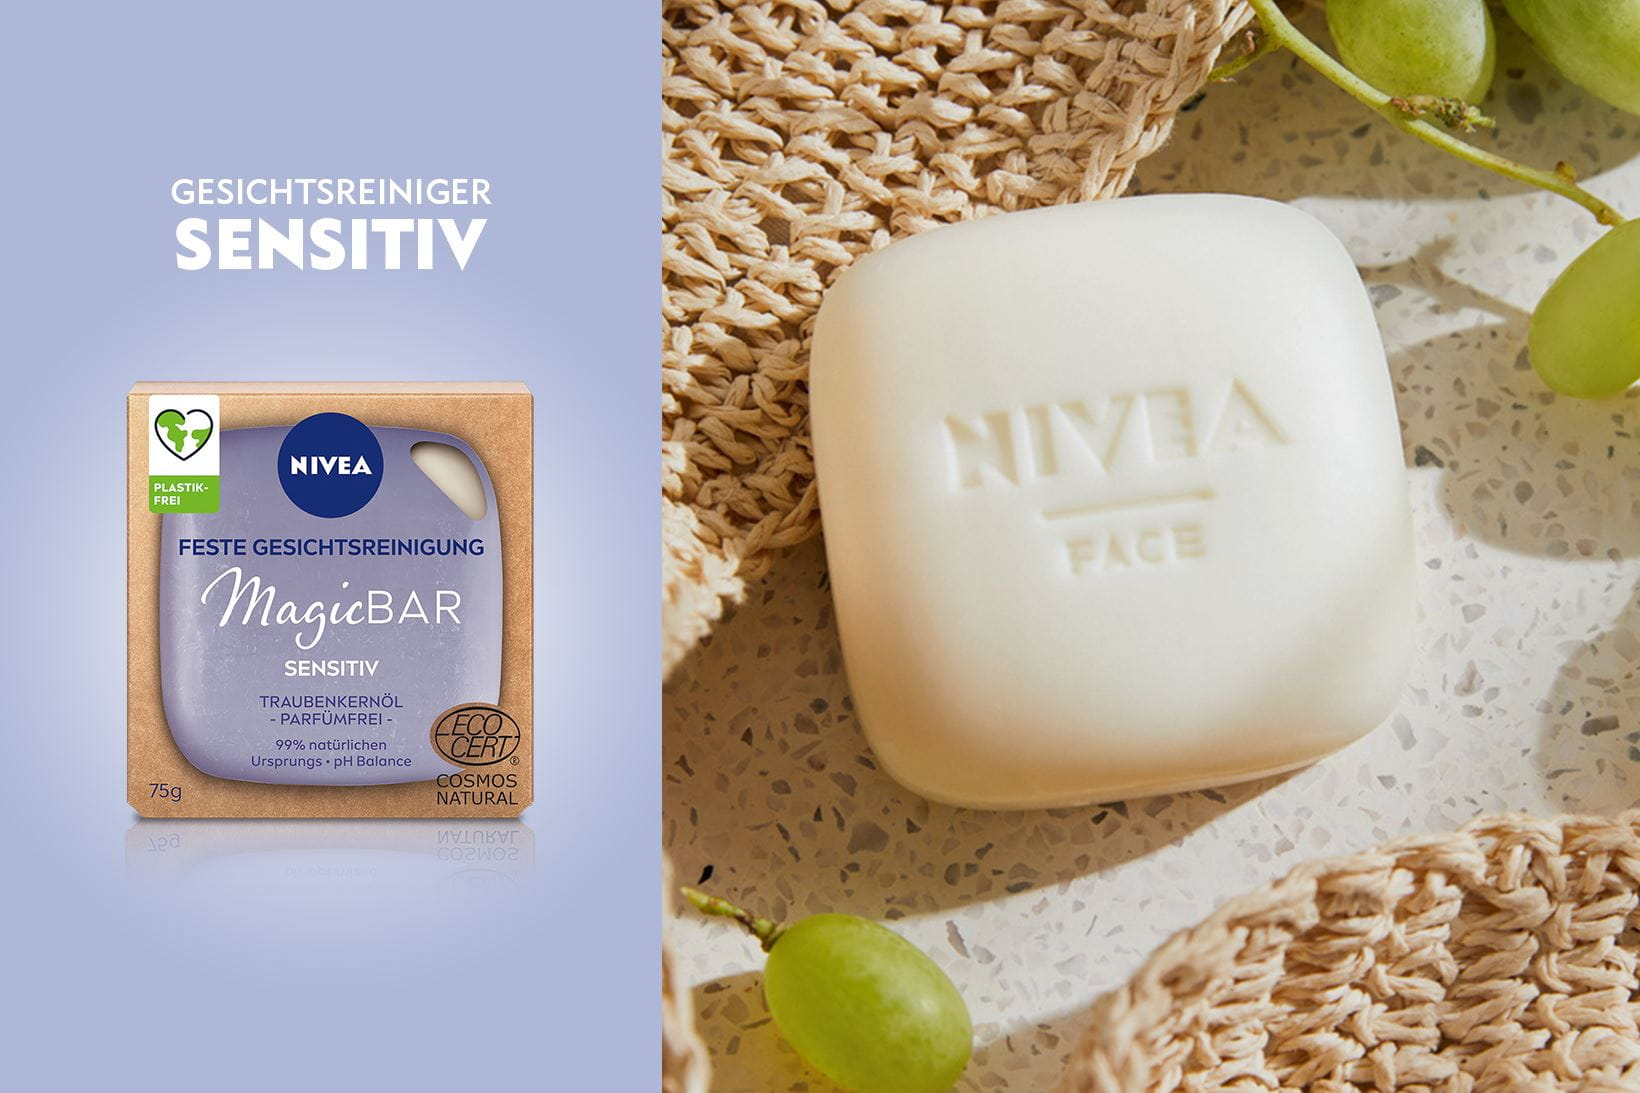 NIVEA Magic Bar – Sensitiv